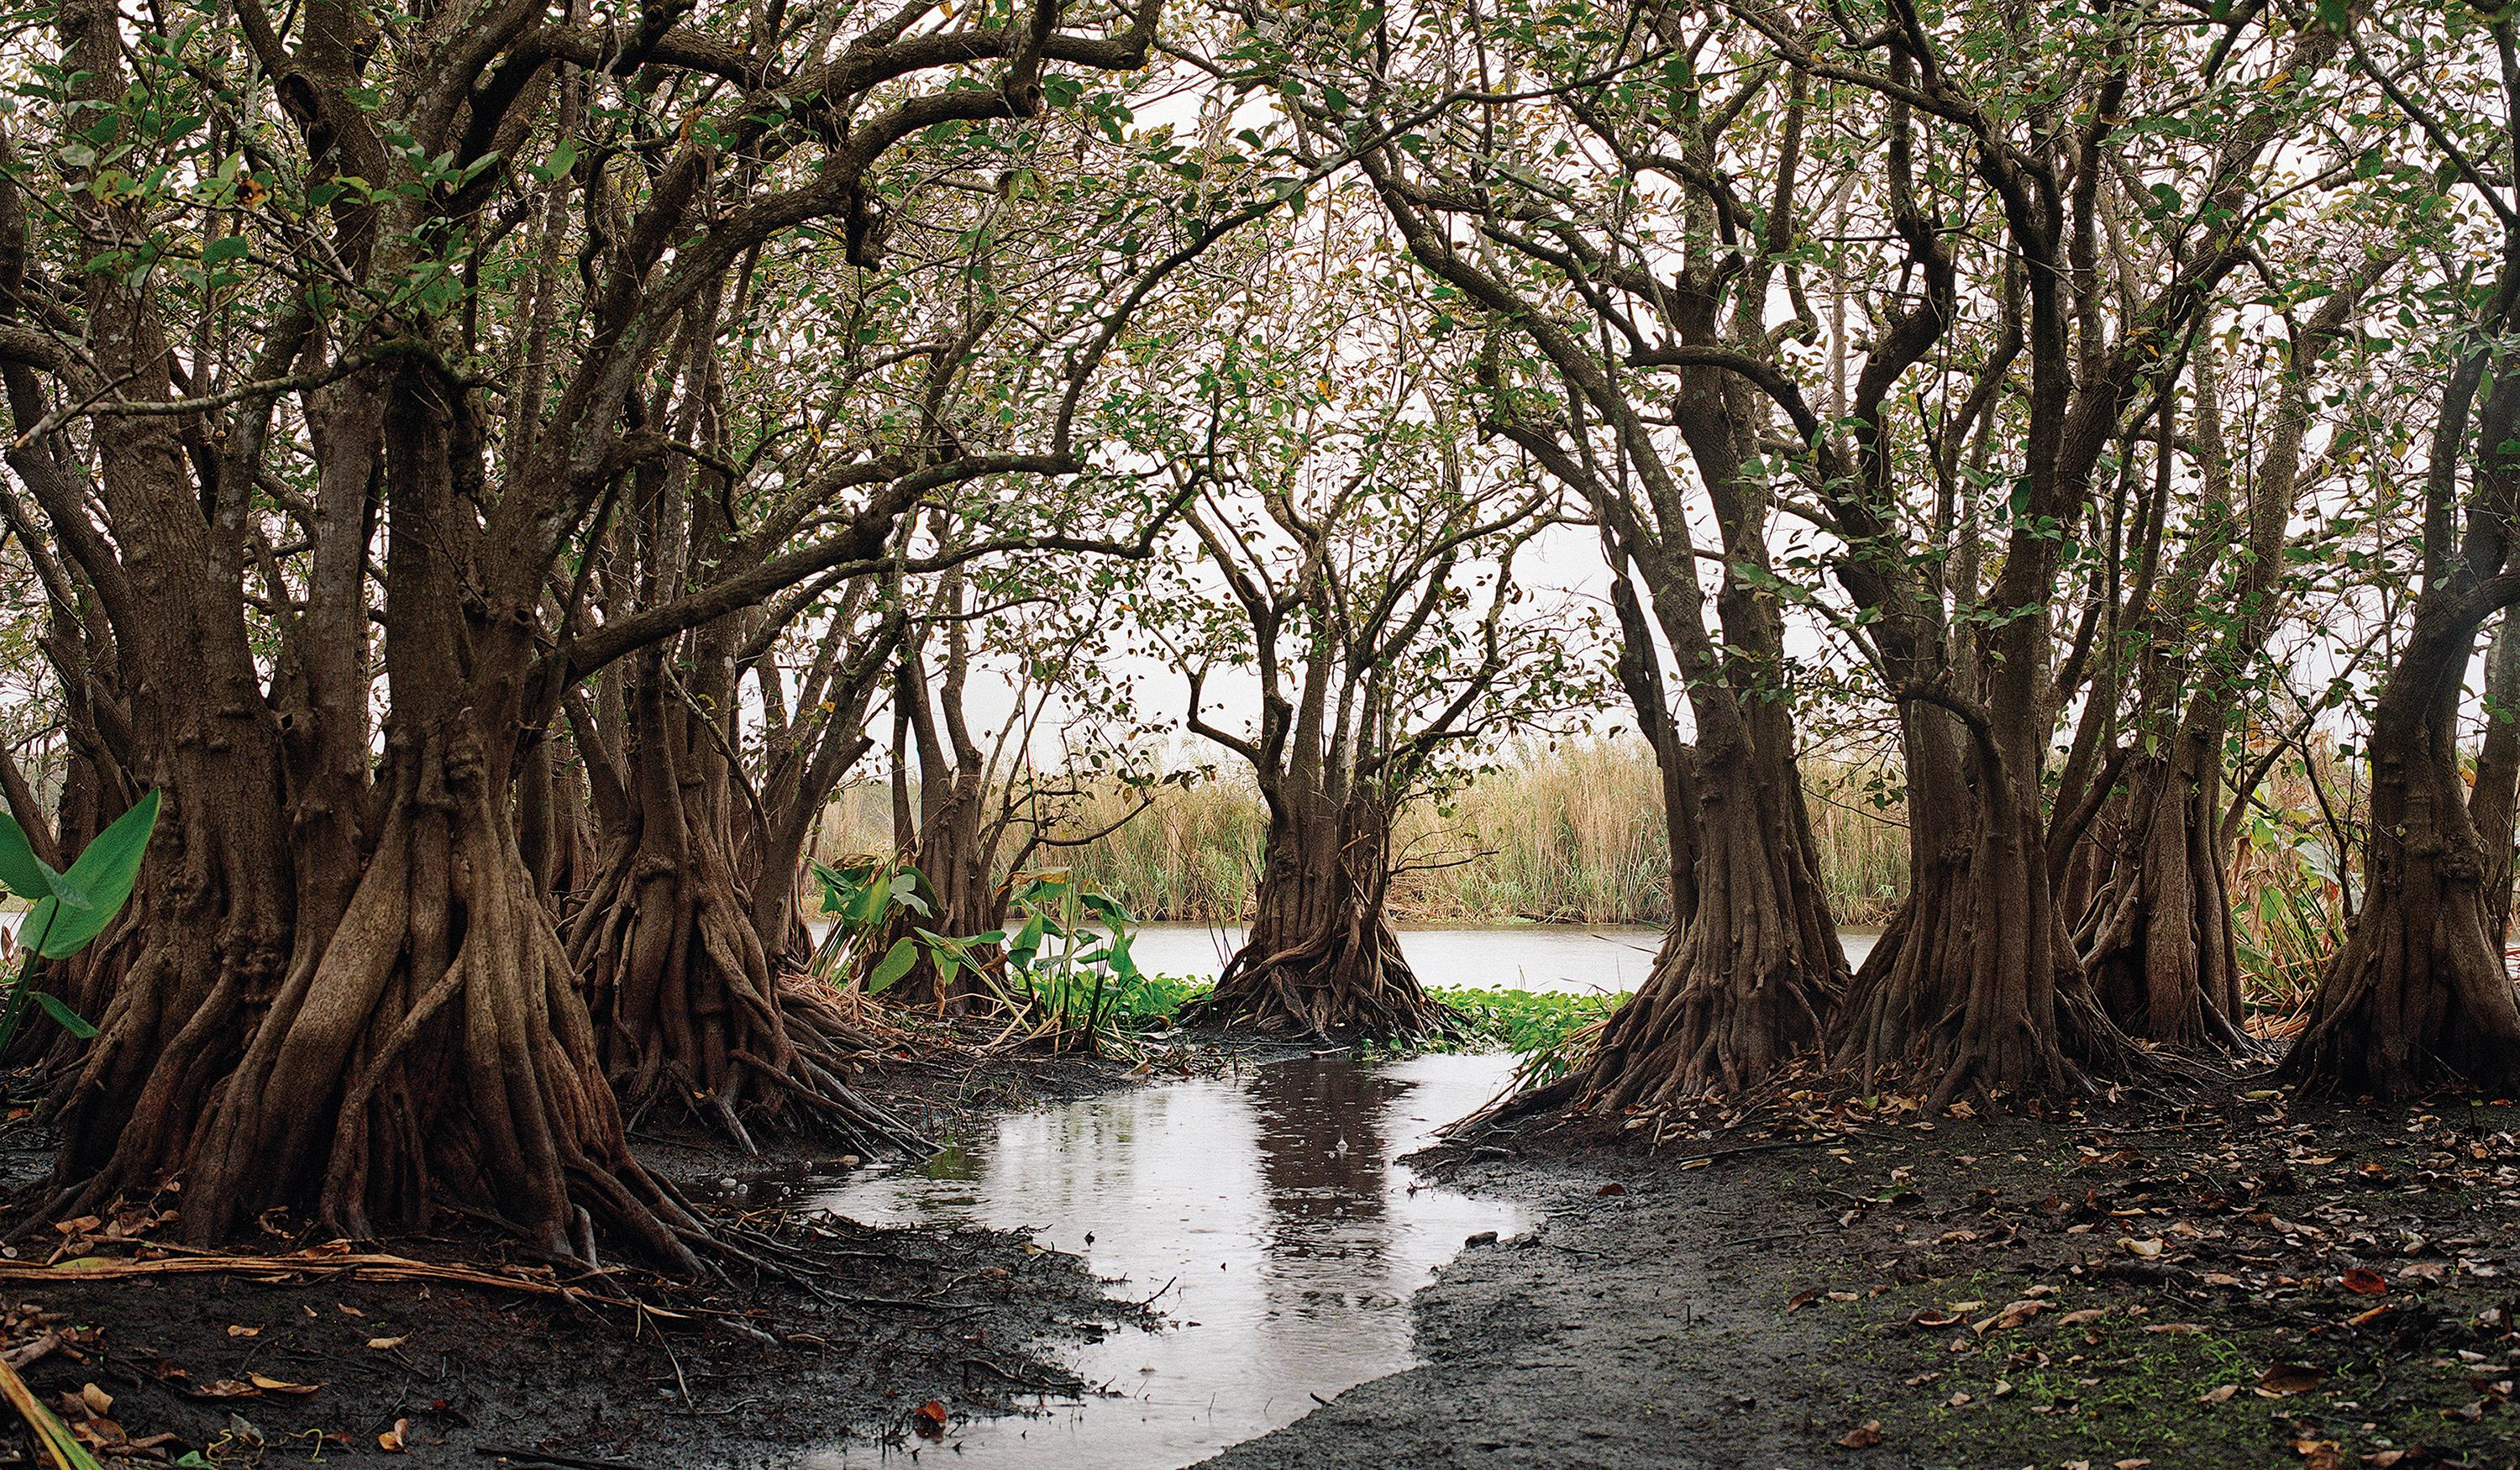 Custard apple trees—a freshwater version of mangroves once ringed Lake Okeechobee's southern shore in a three-mile-wide belt. Today, barely 100 acres remain.